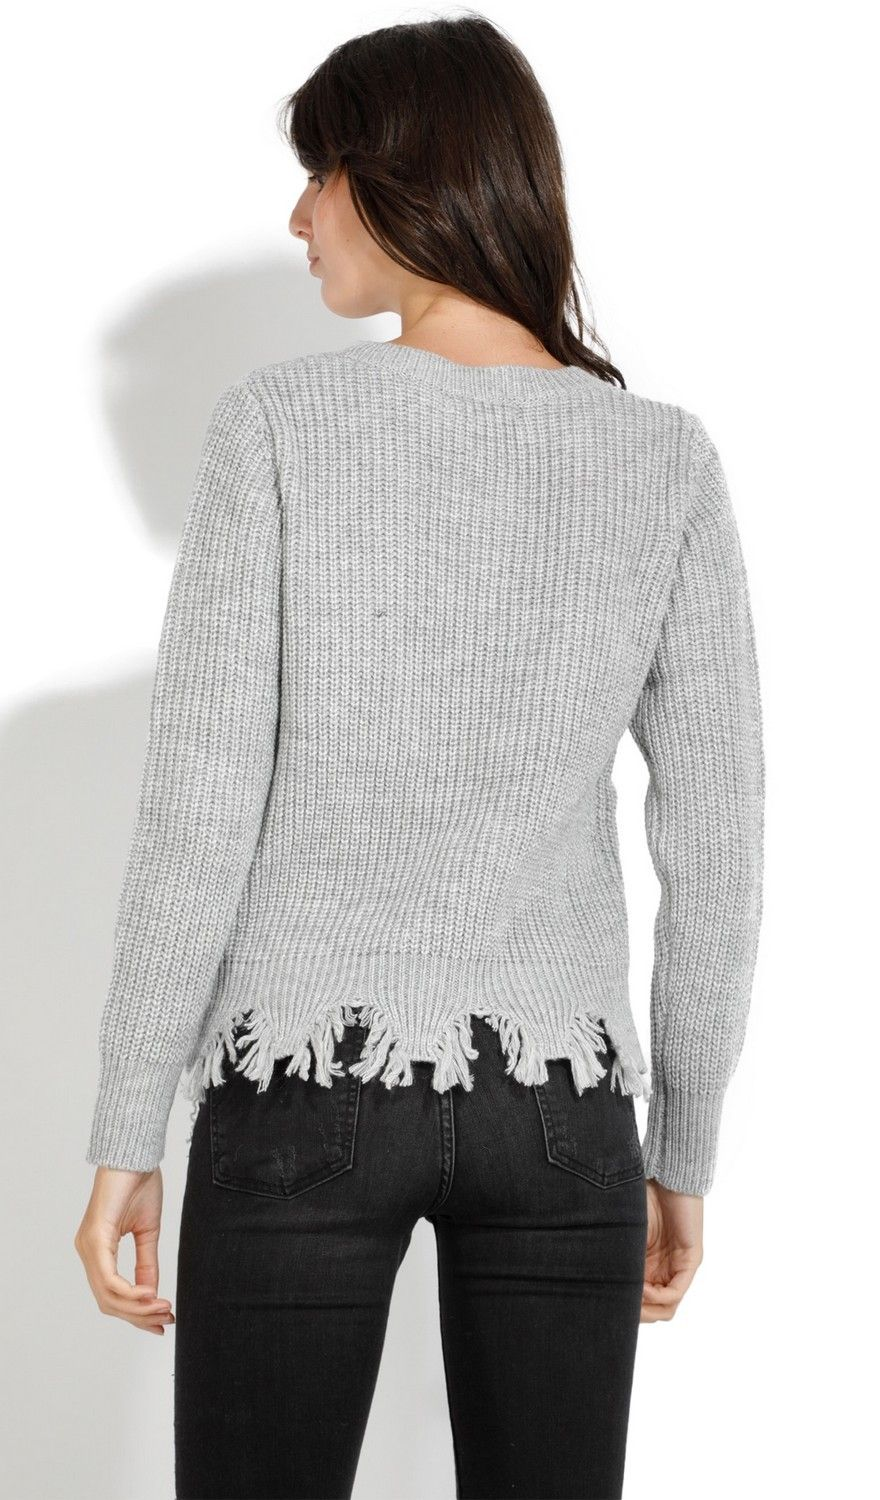 Assuili Crew Neck Ribbed Sweater with Distressed Hem in Grey